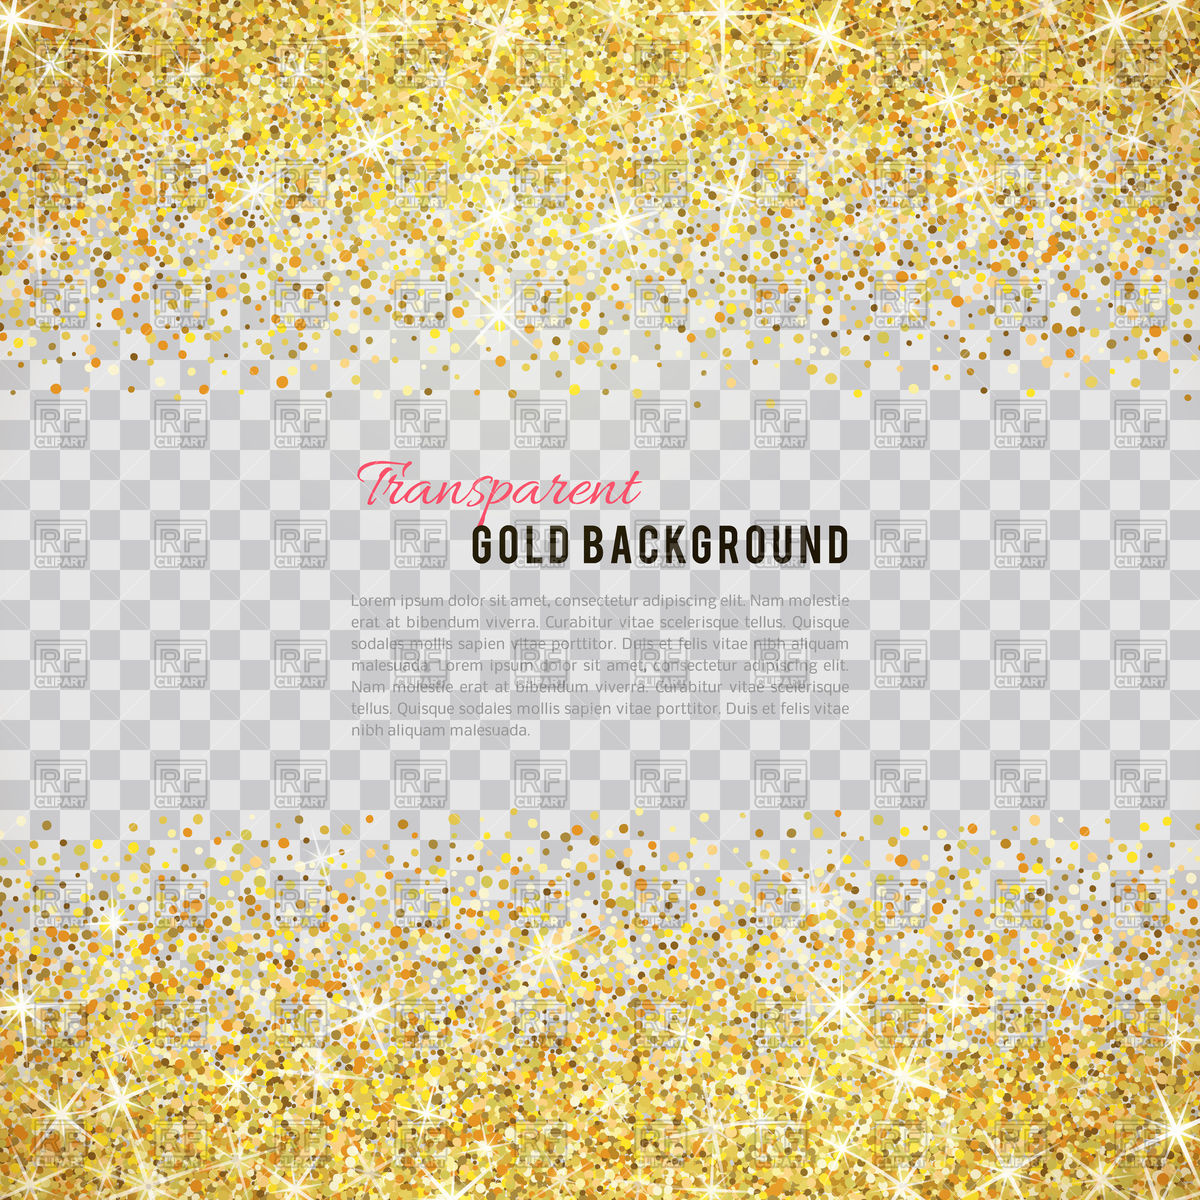 Gold glitter background Vector Image #112357.